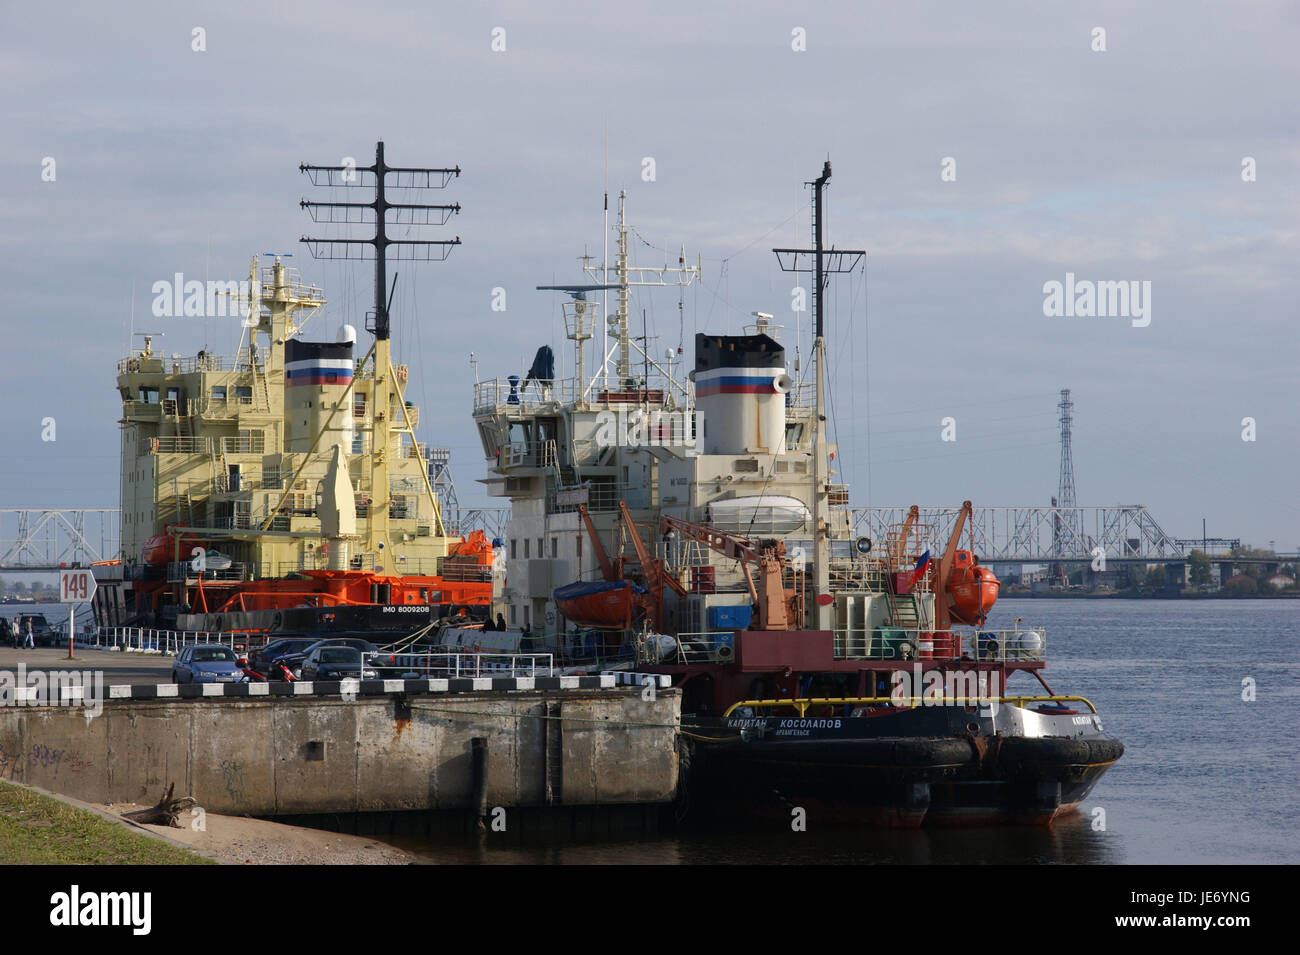 Russia, Archangelsk, harbour, ships, town, port, north soot country, Icebreaker, navigation, white sea, waters, - Stock Image